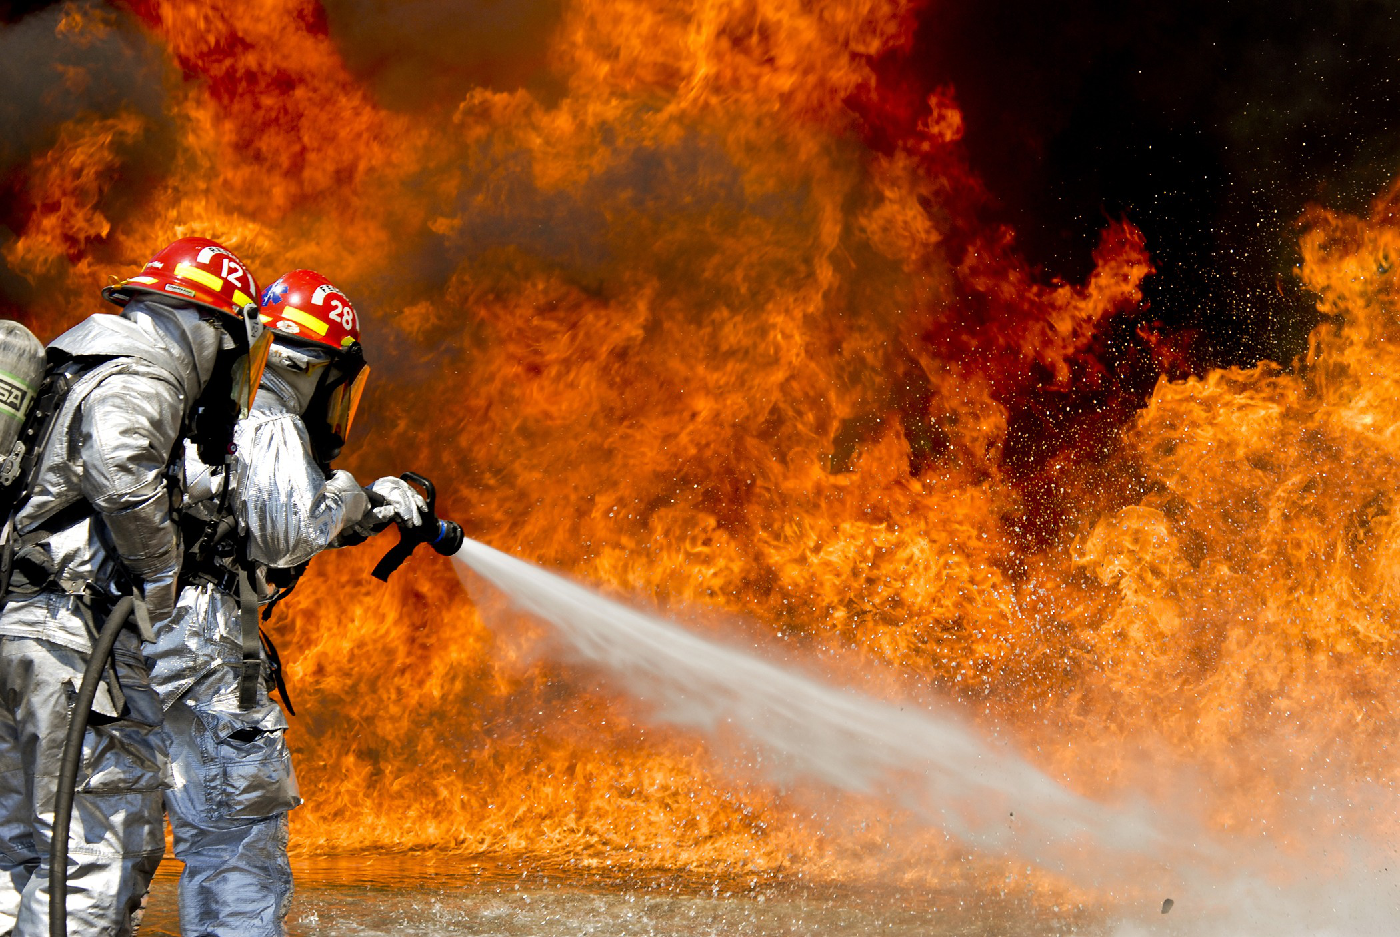 firefighters-fire-flames-outside-1400x937.png